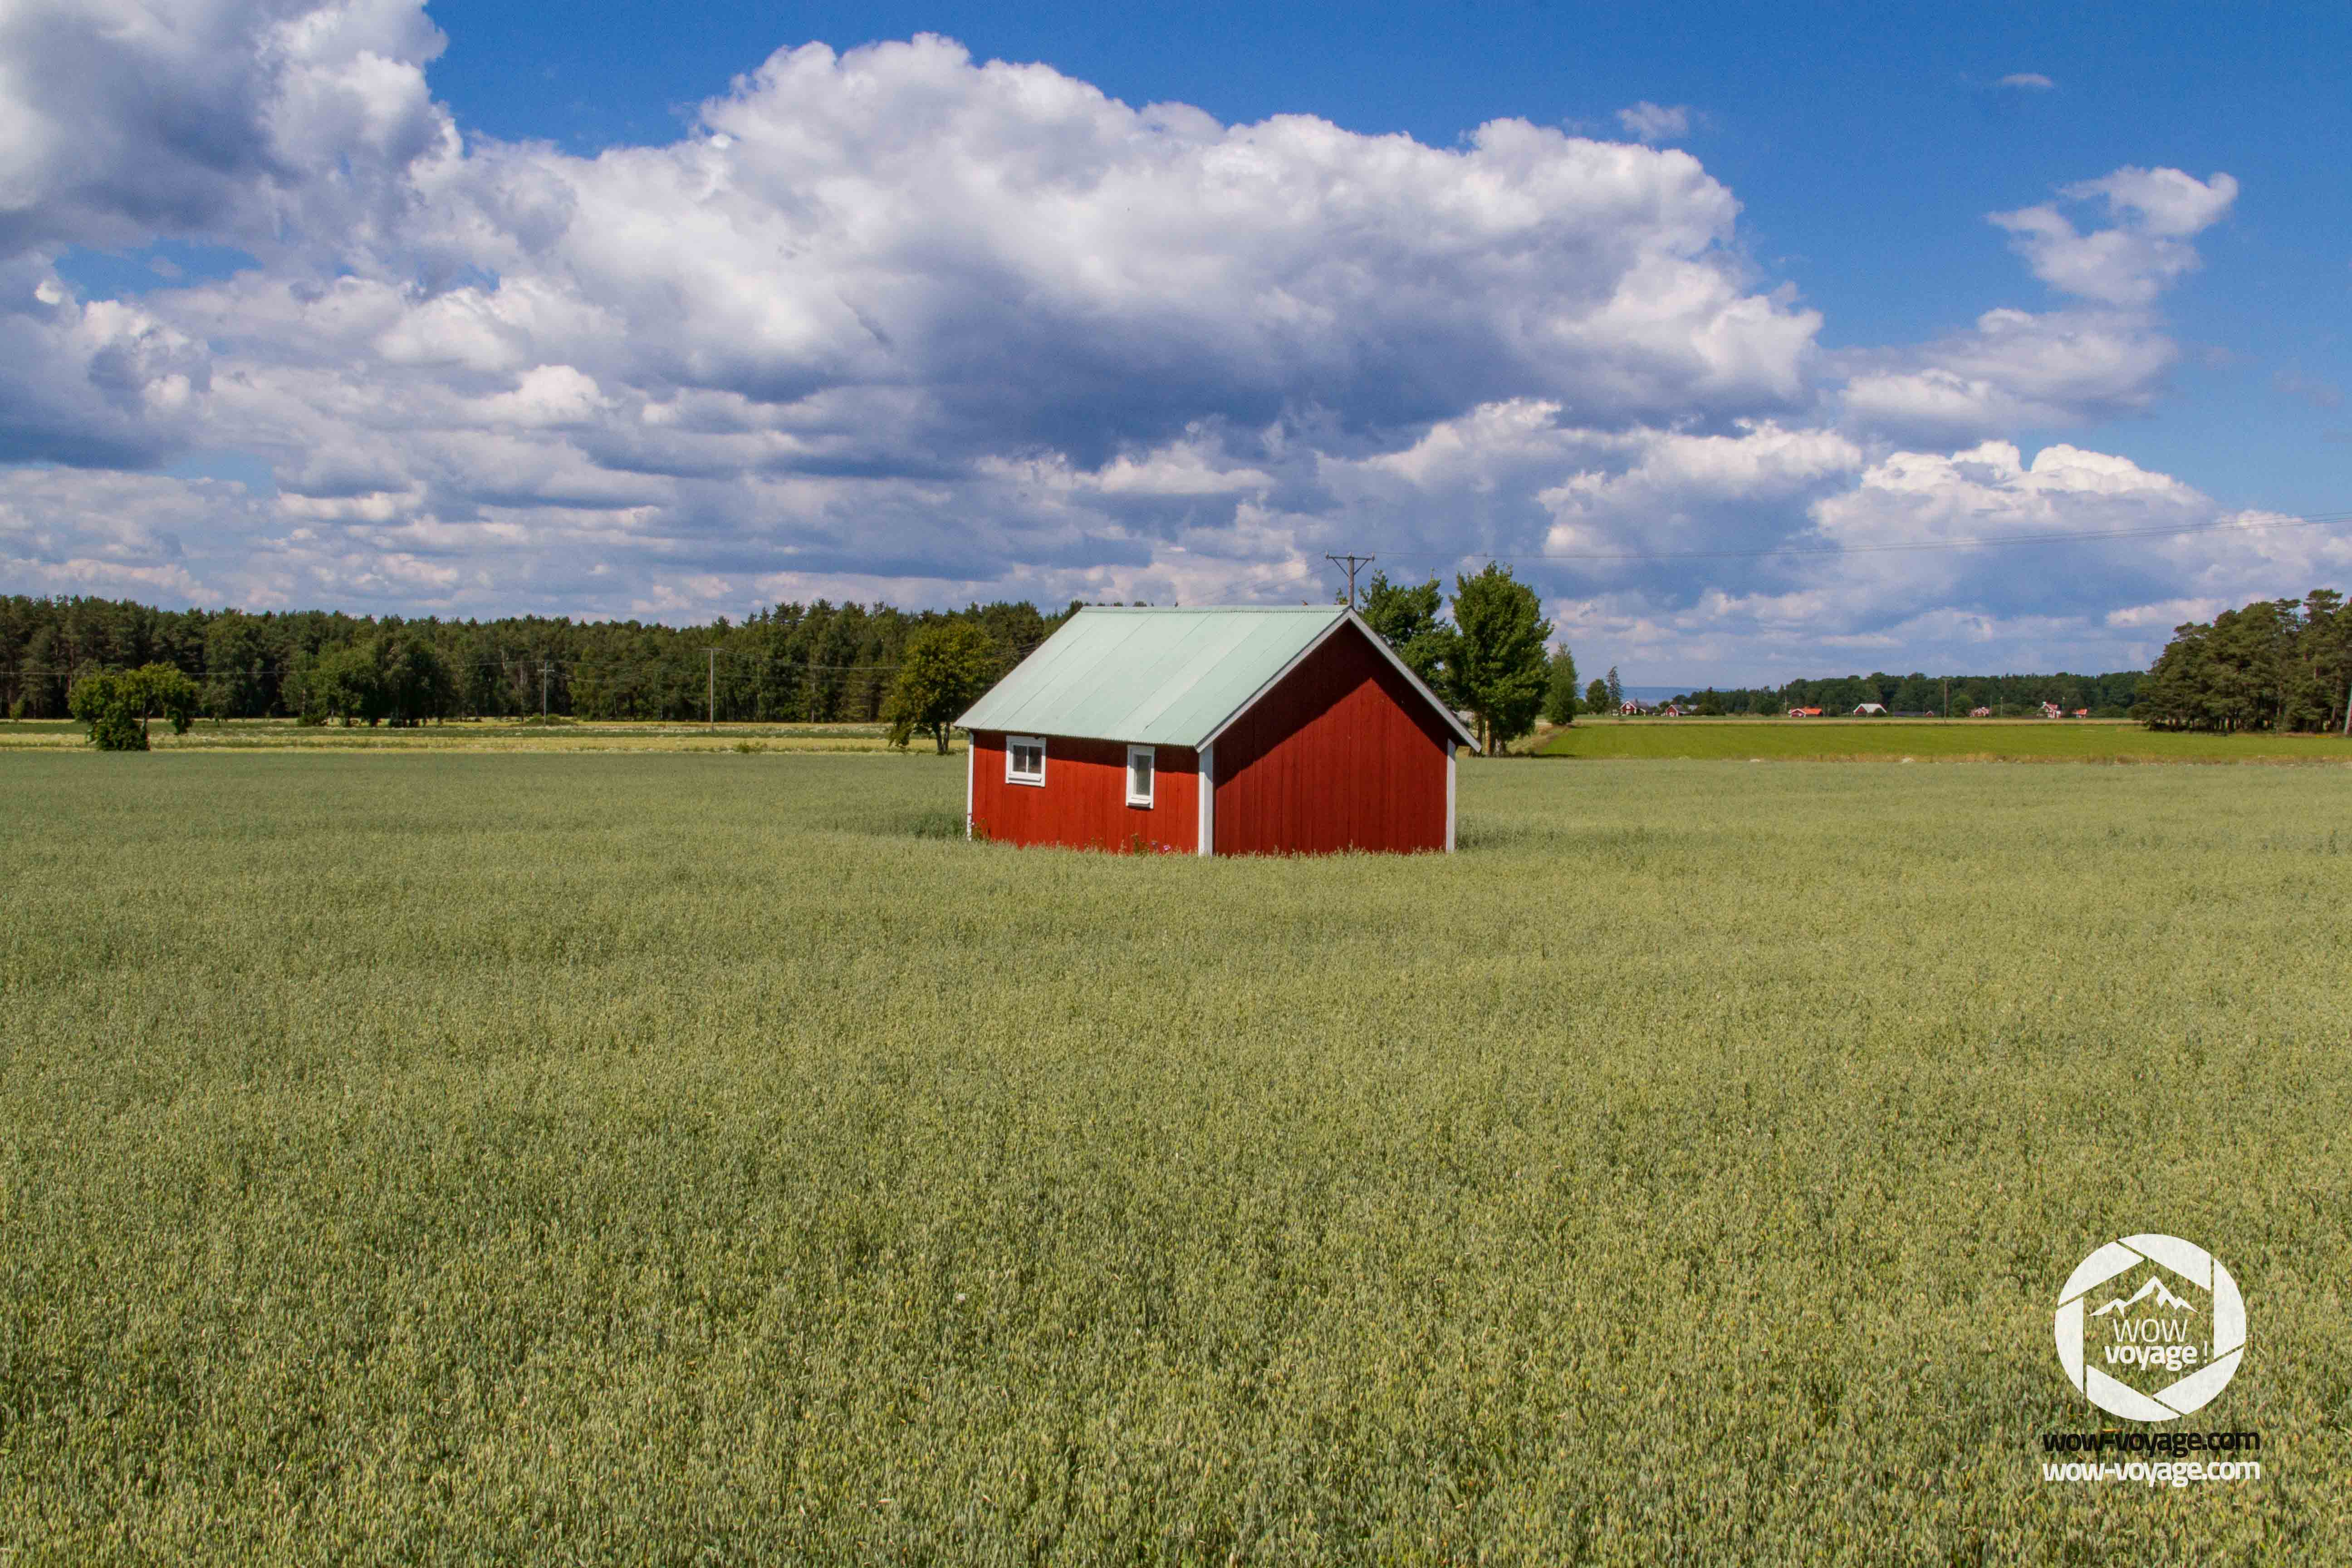 small swedish style house in a field, sweden, Visingsö